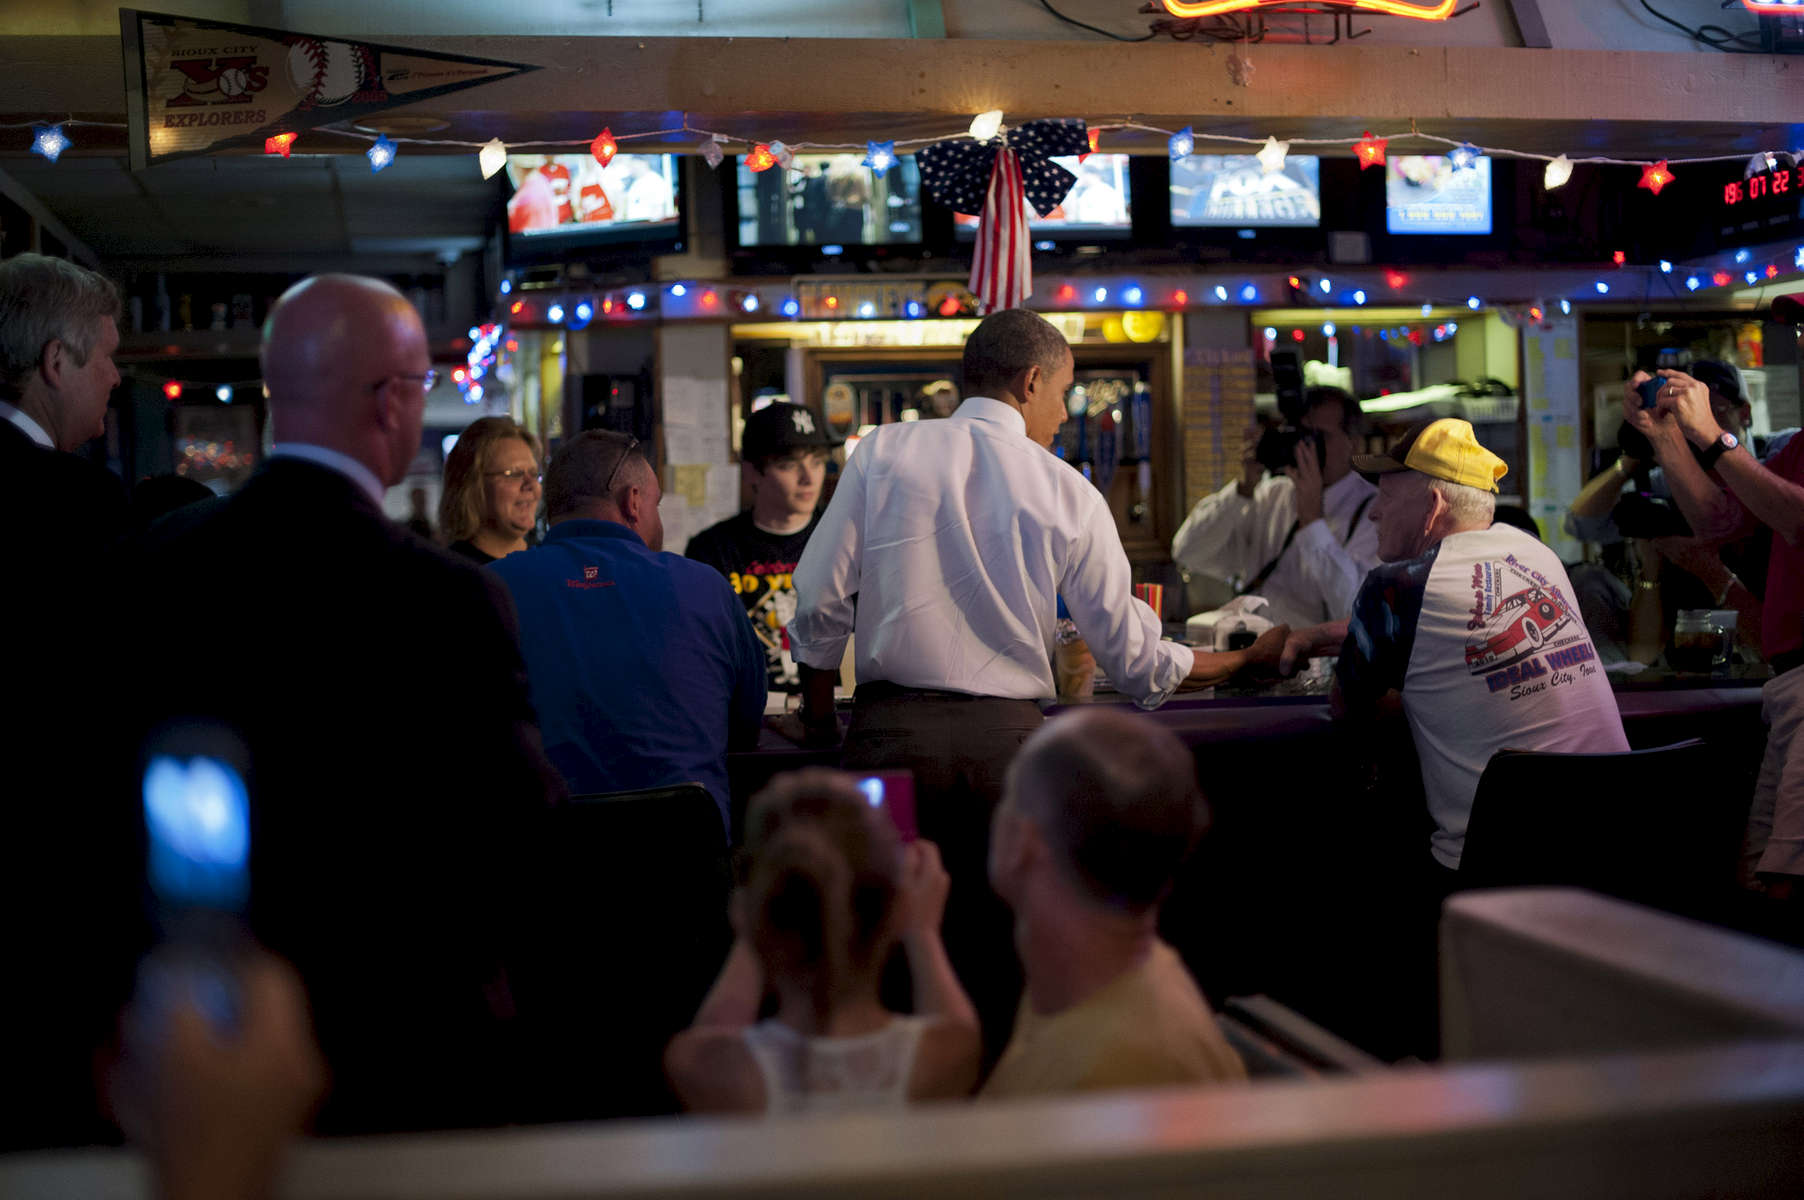 September 1, 2012 - Sioux City, IA: President Barack Obama greets patrons at Bob Roe's Point After sports bar in Sioux City, IA.  (Scout Tufankjian for Obama for America/Polaris)